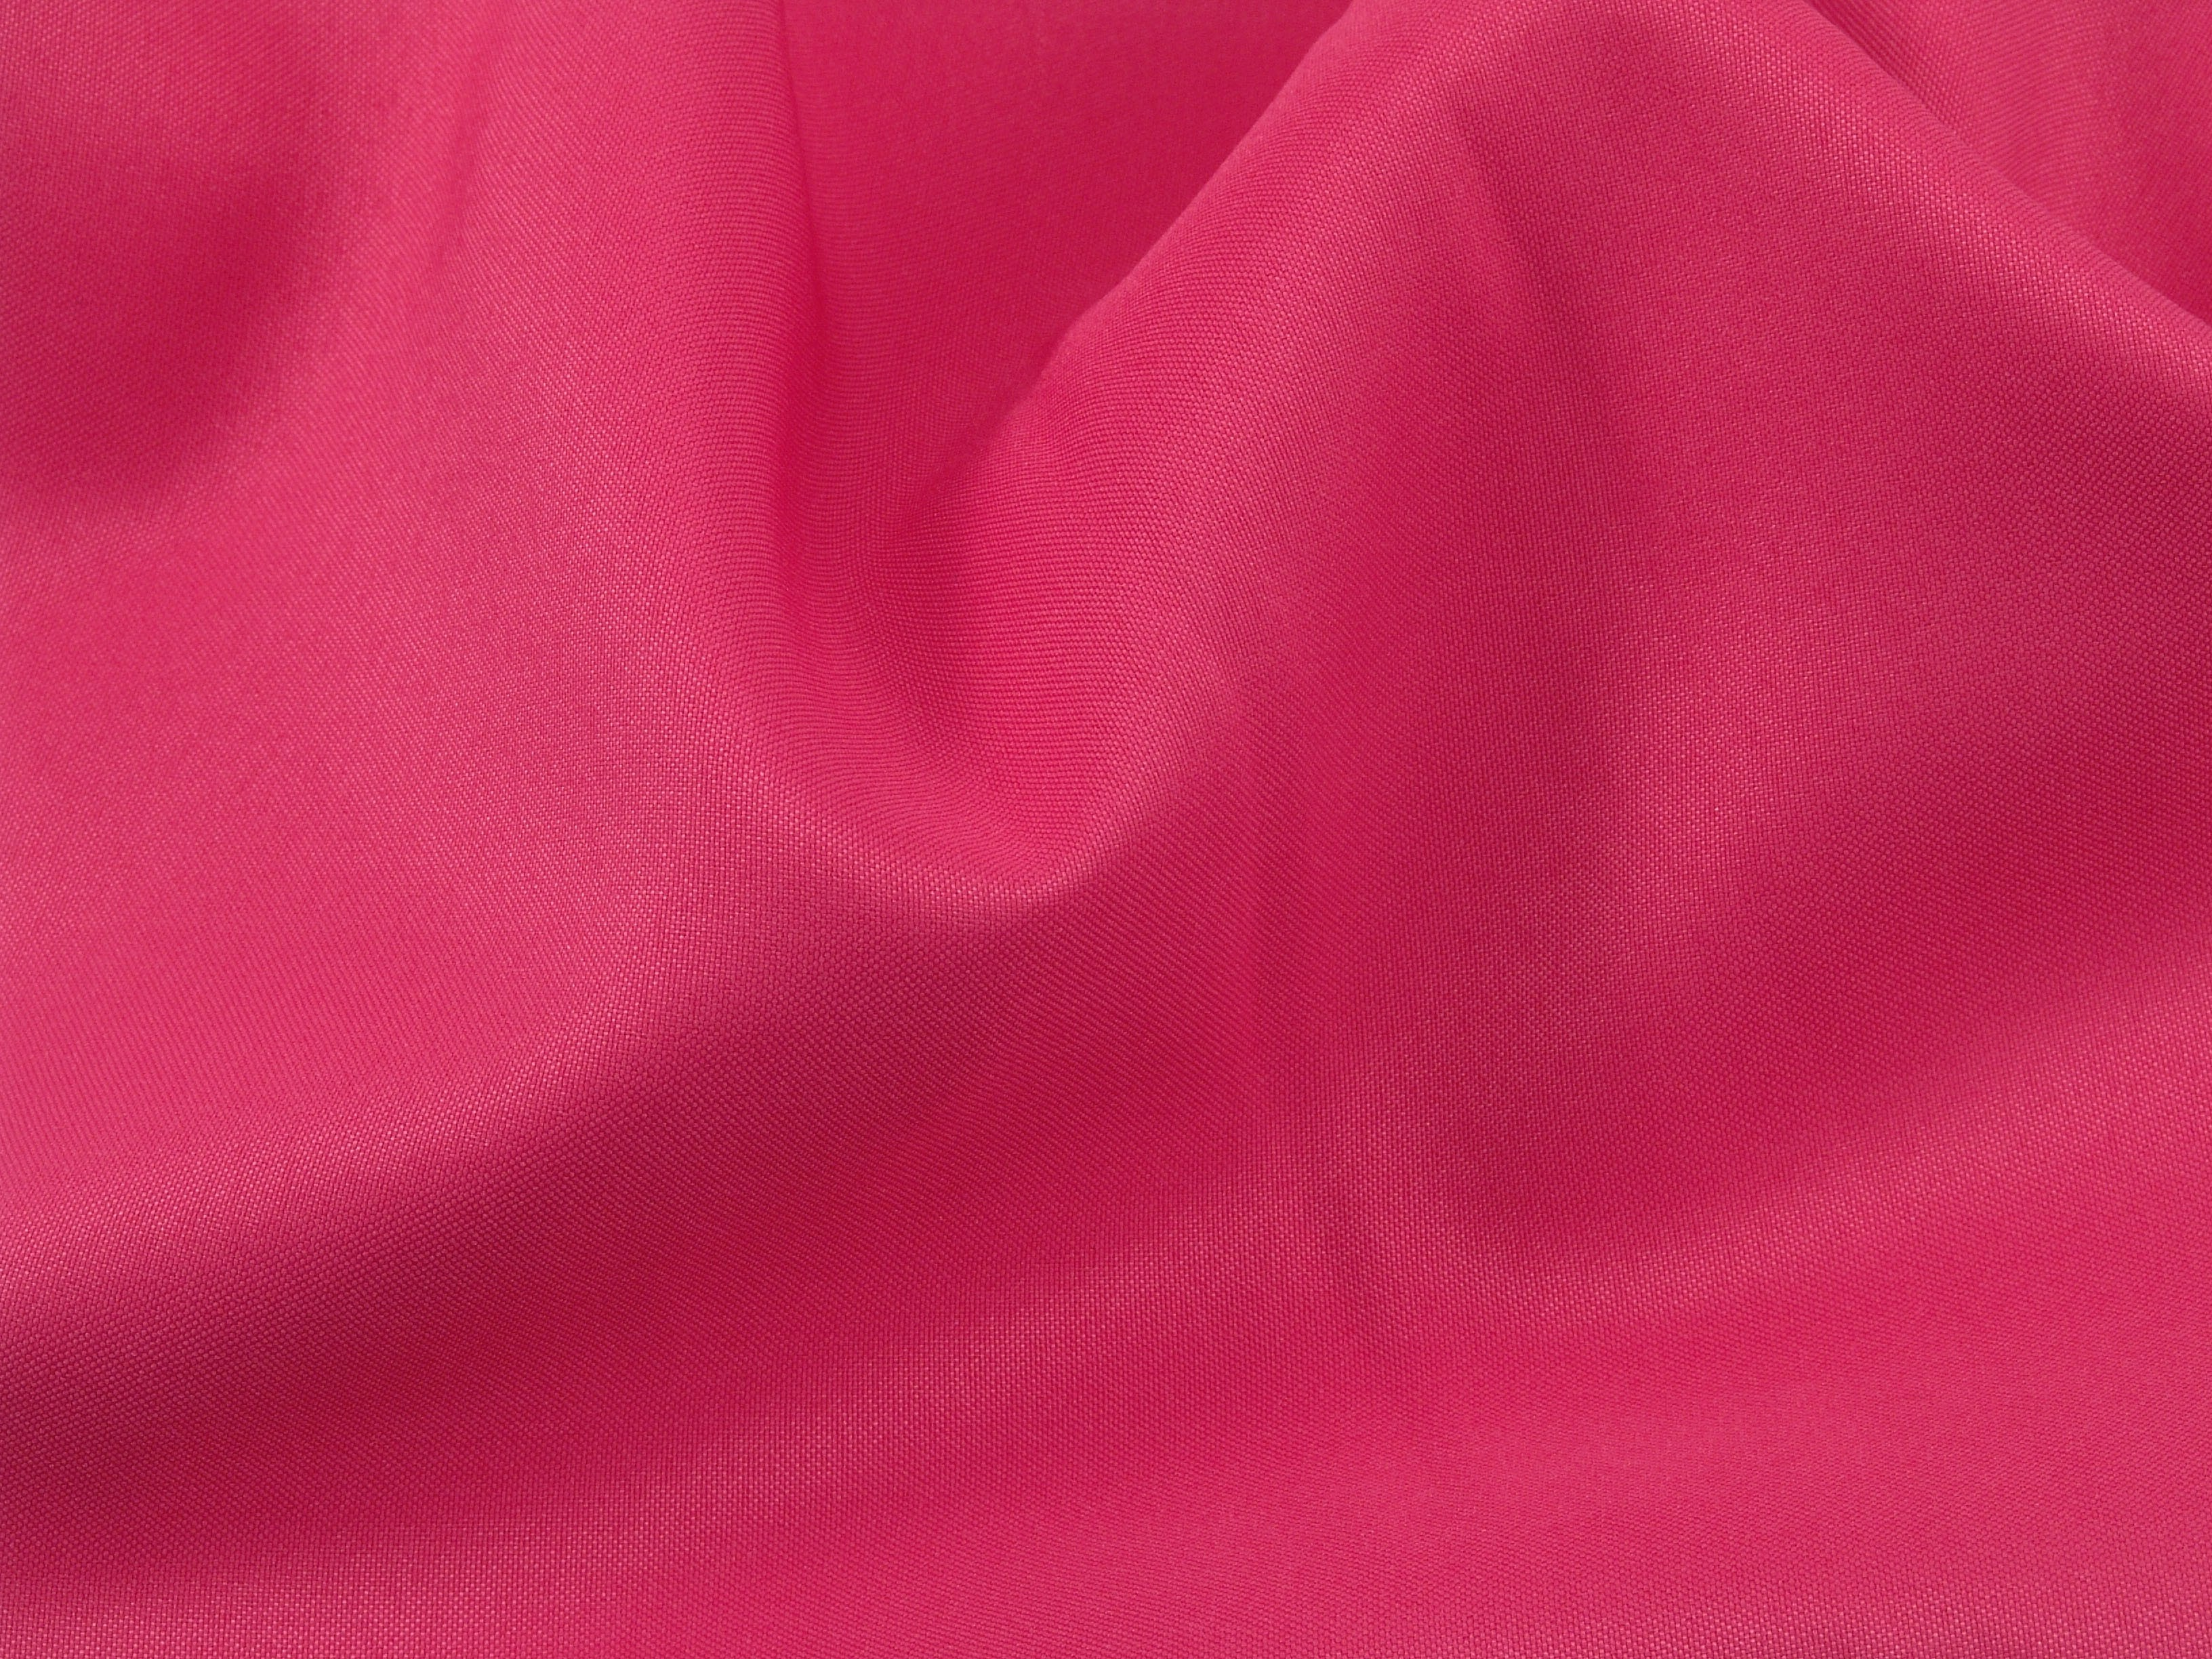 Neon Hot Pink Spandex Bands   CTS85 (Qty: 157+)